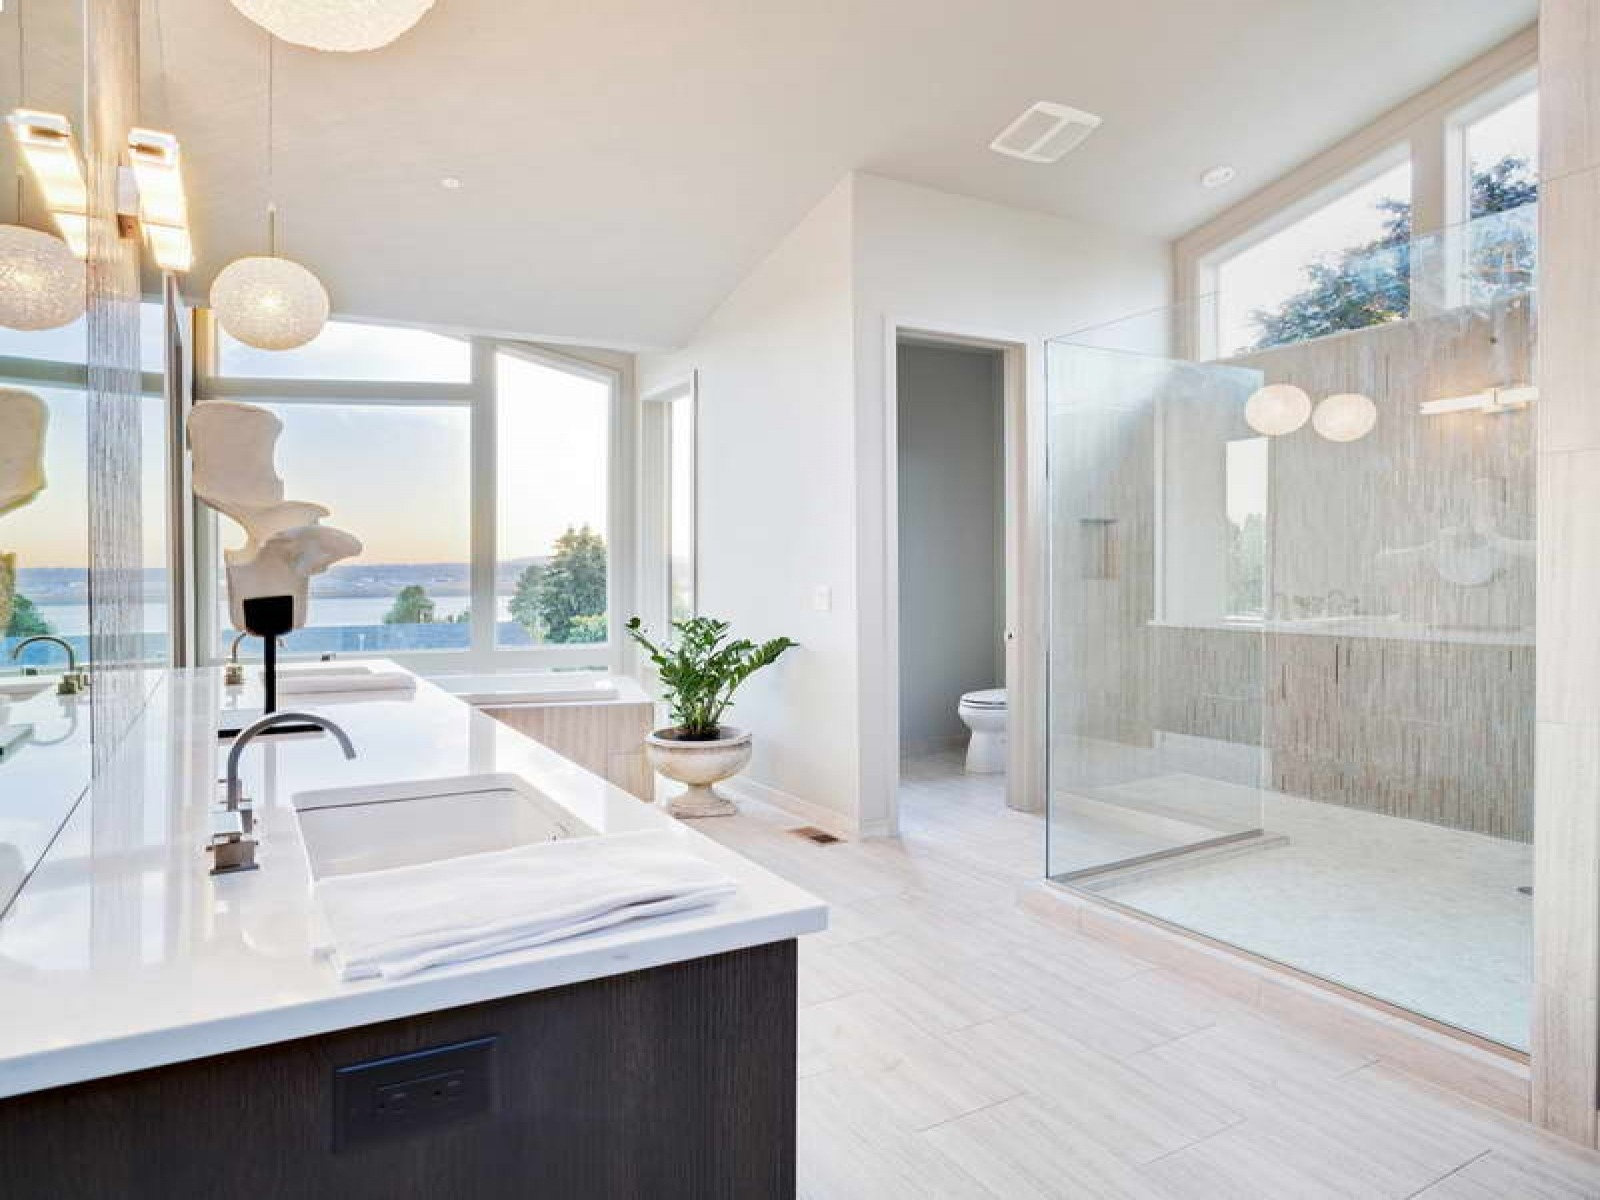 Beautiful Bathroom Design Pictures : Bathroom upgrades that are worth the cost mcdonald contractingmcdonald contracting